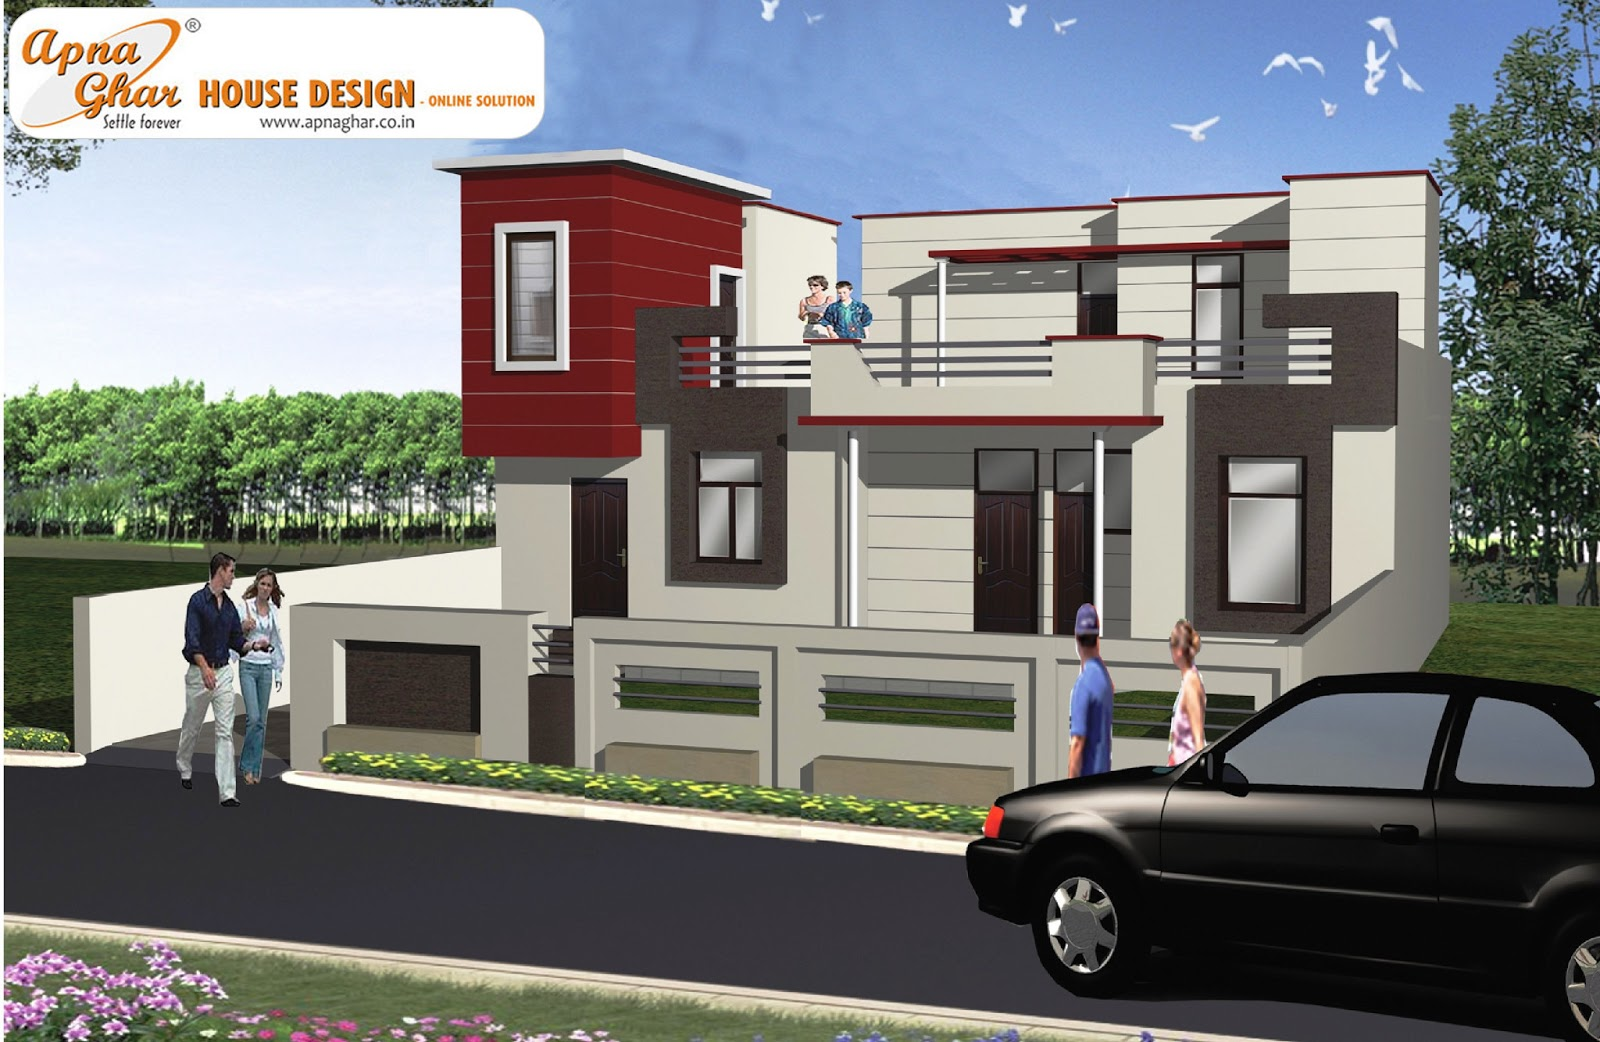 Modern beautiful duplex house design home staging for Modern duplex house designs